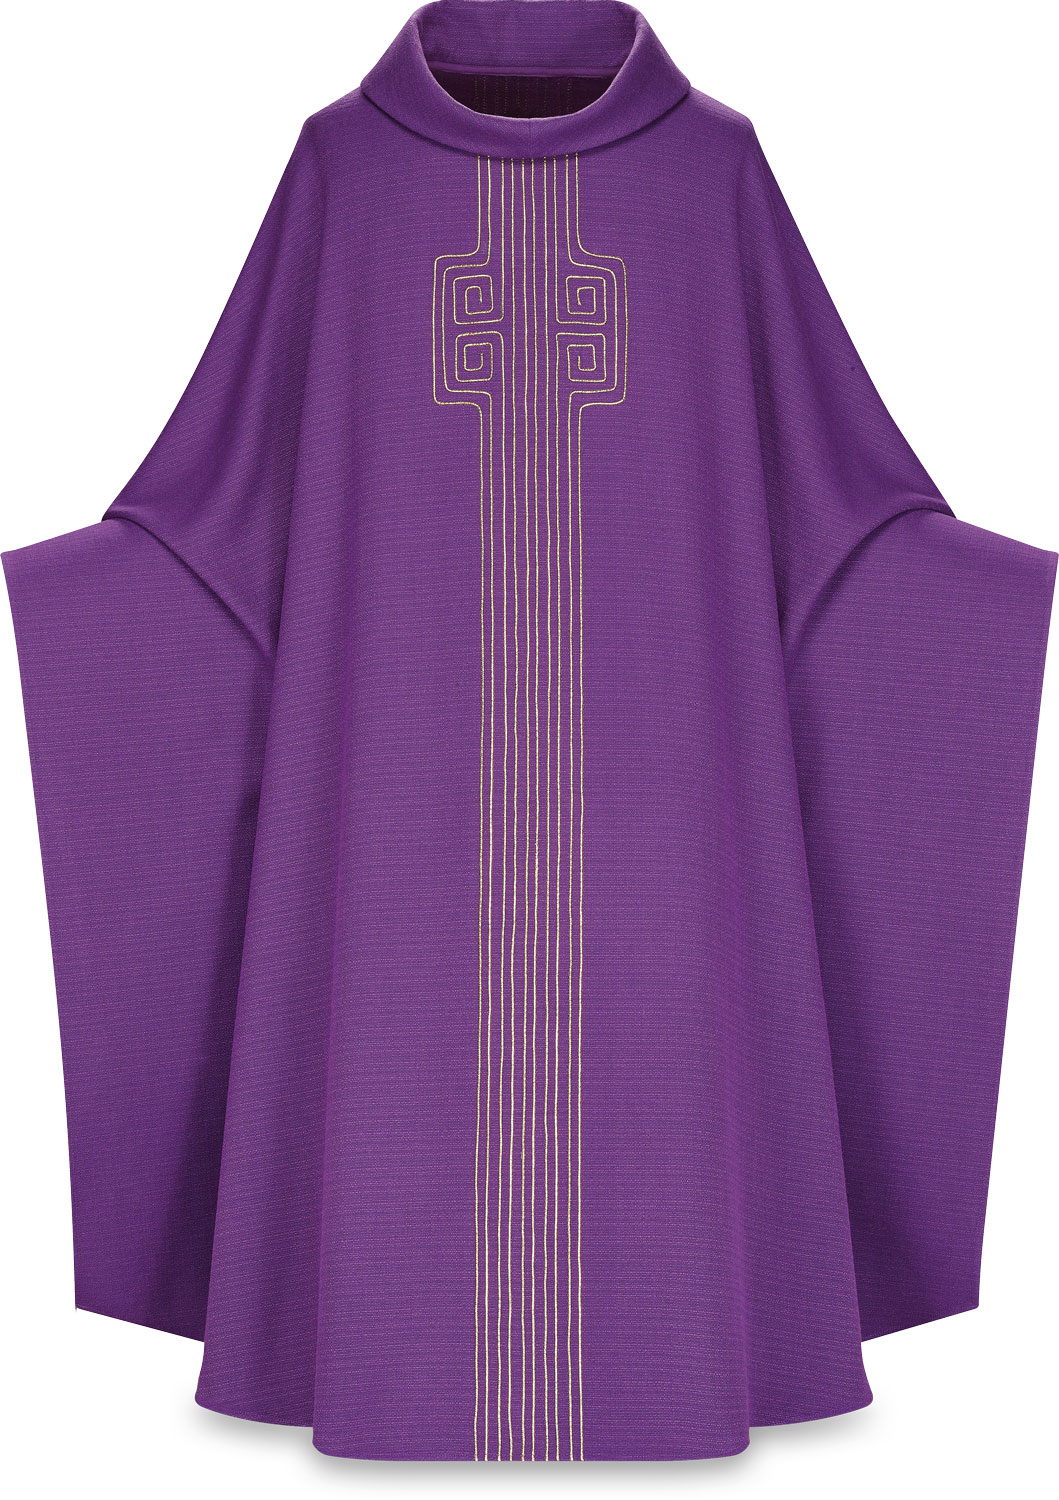 Chasuble | Purple | 5239 | Slabbinck